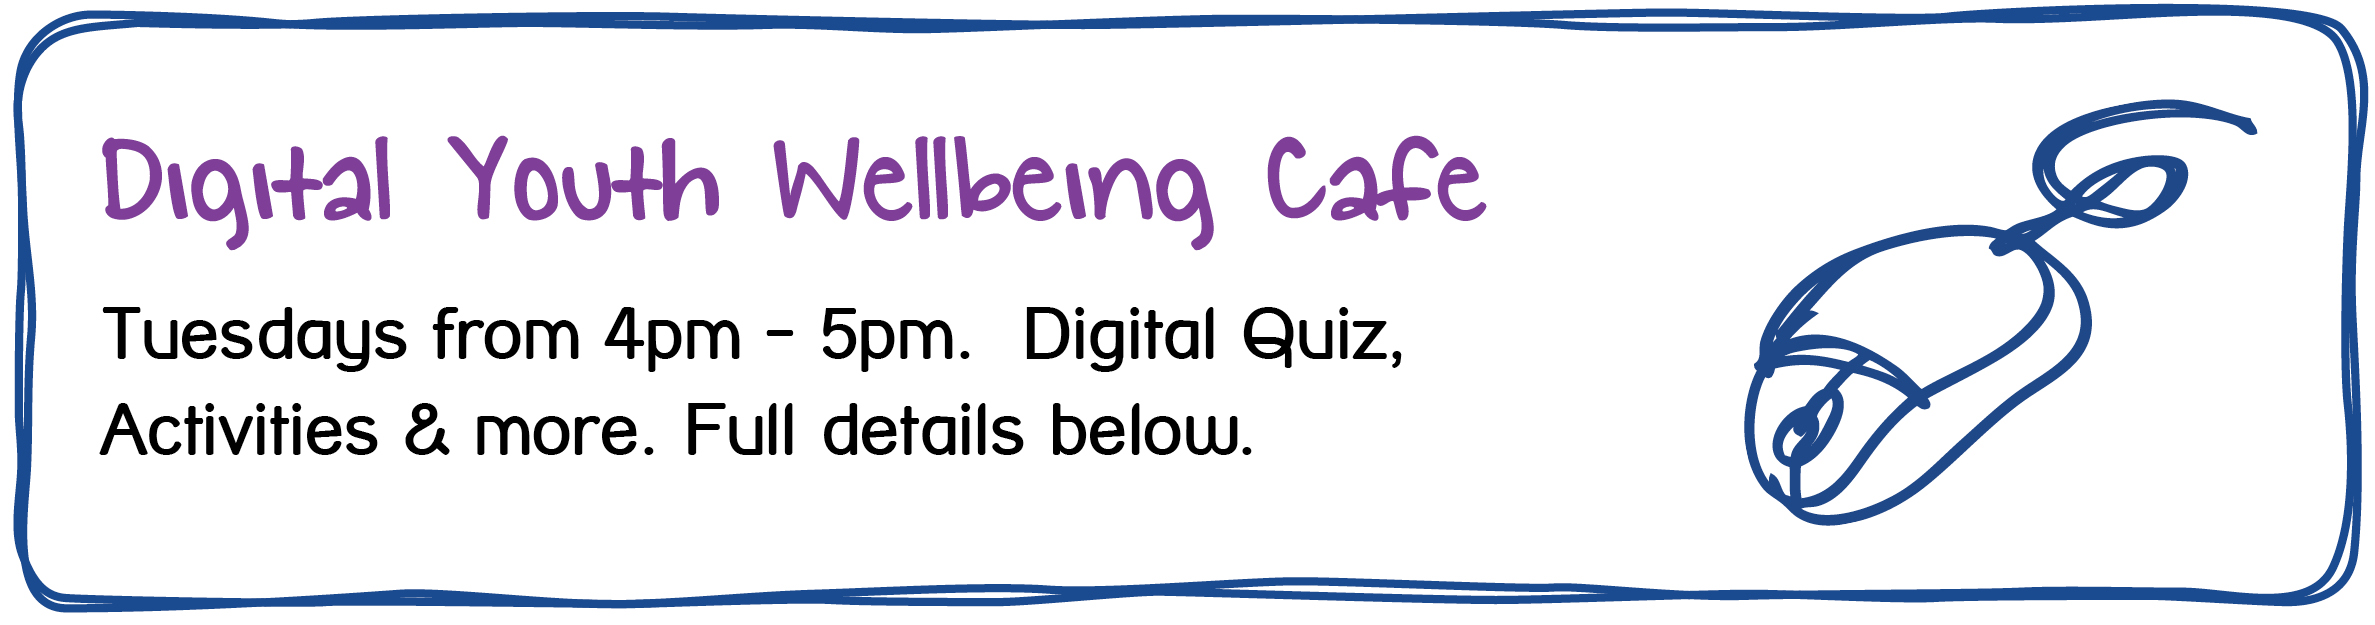 Maidstone Youth Wellbeing Cafe - Digital Youth Wellbeing Cafe. Tuesdays from 4pm - 5pm. Digital Quiz, Activities & more. Full details below.